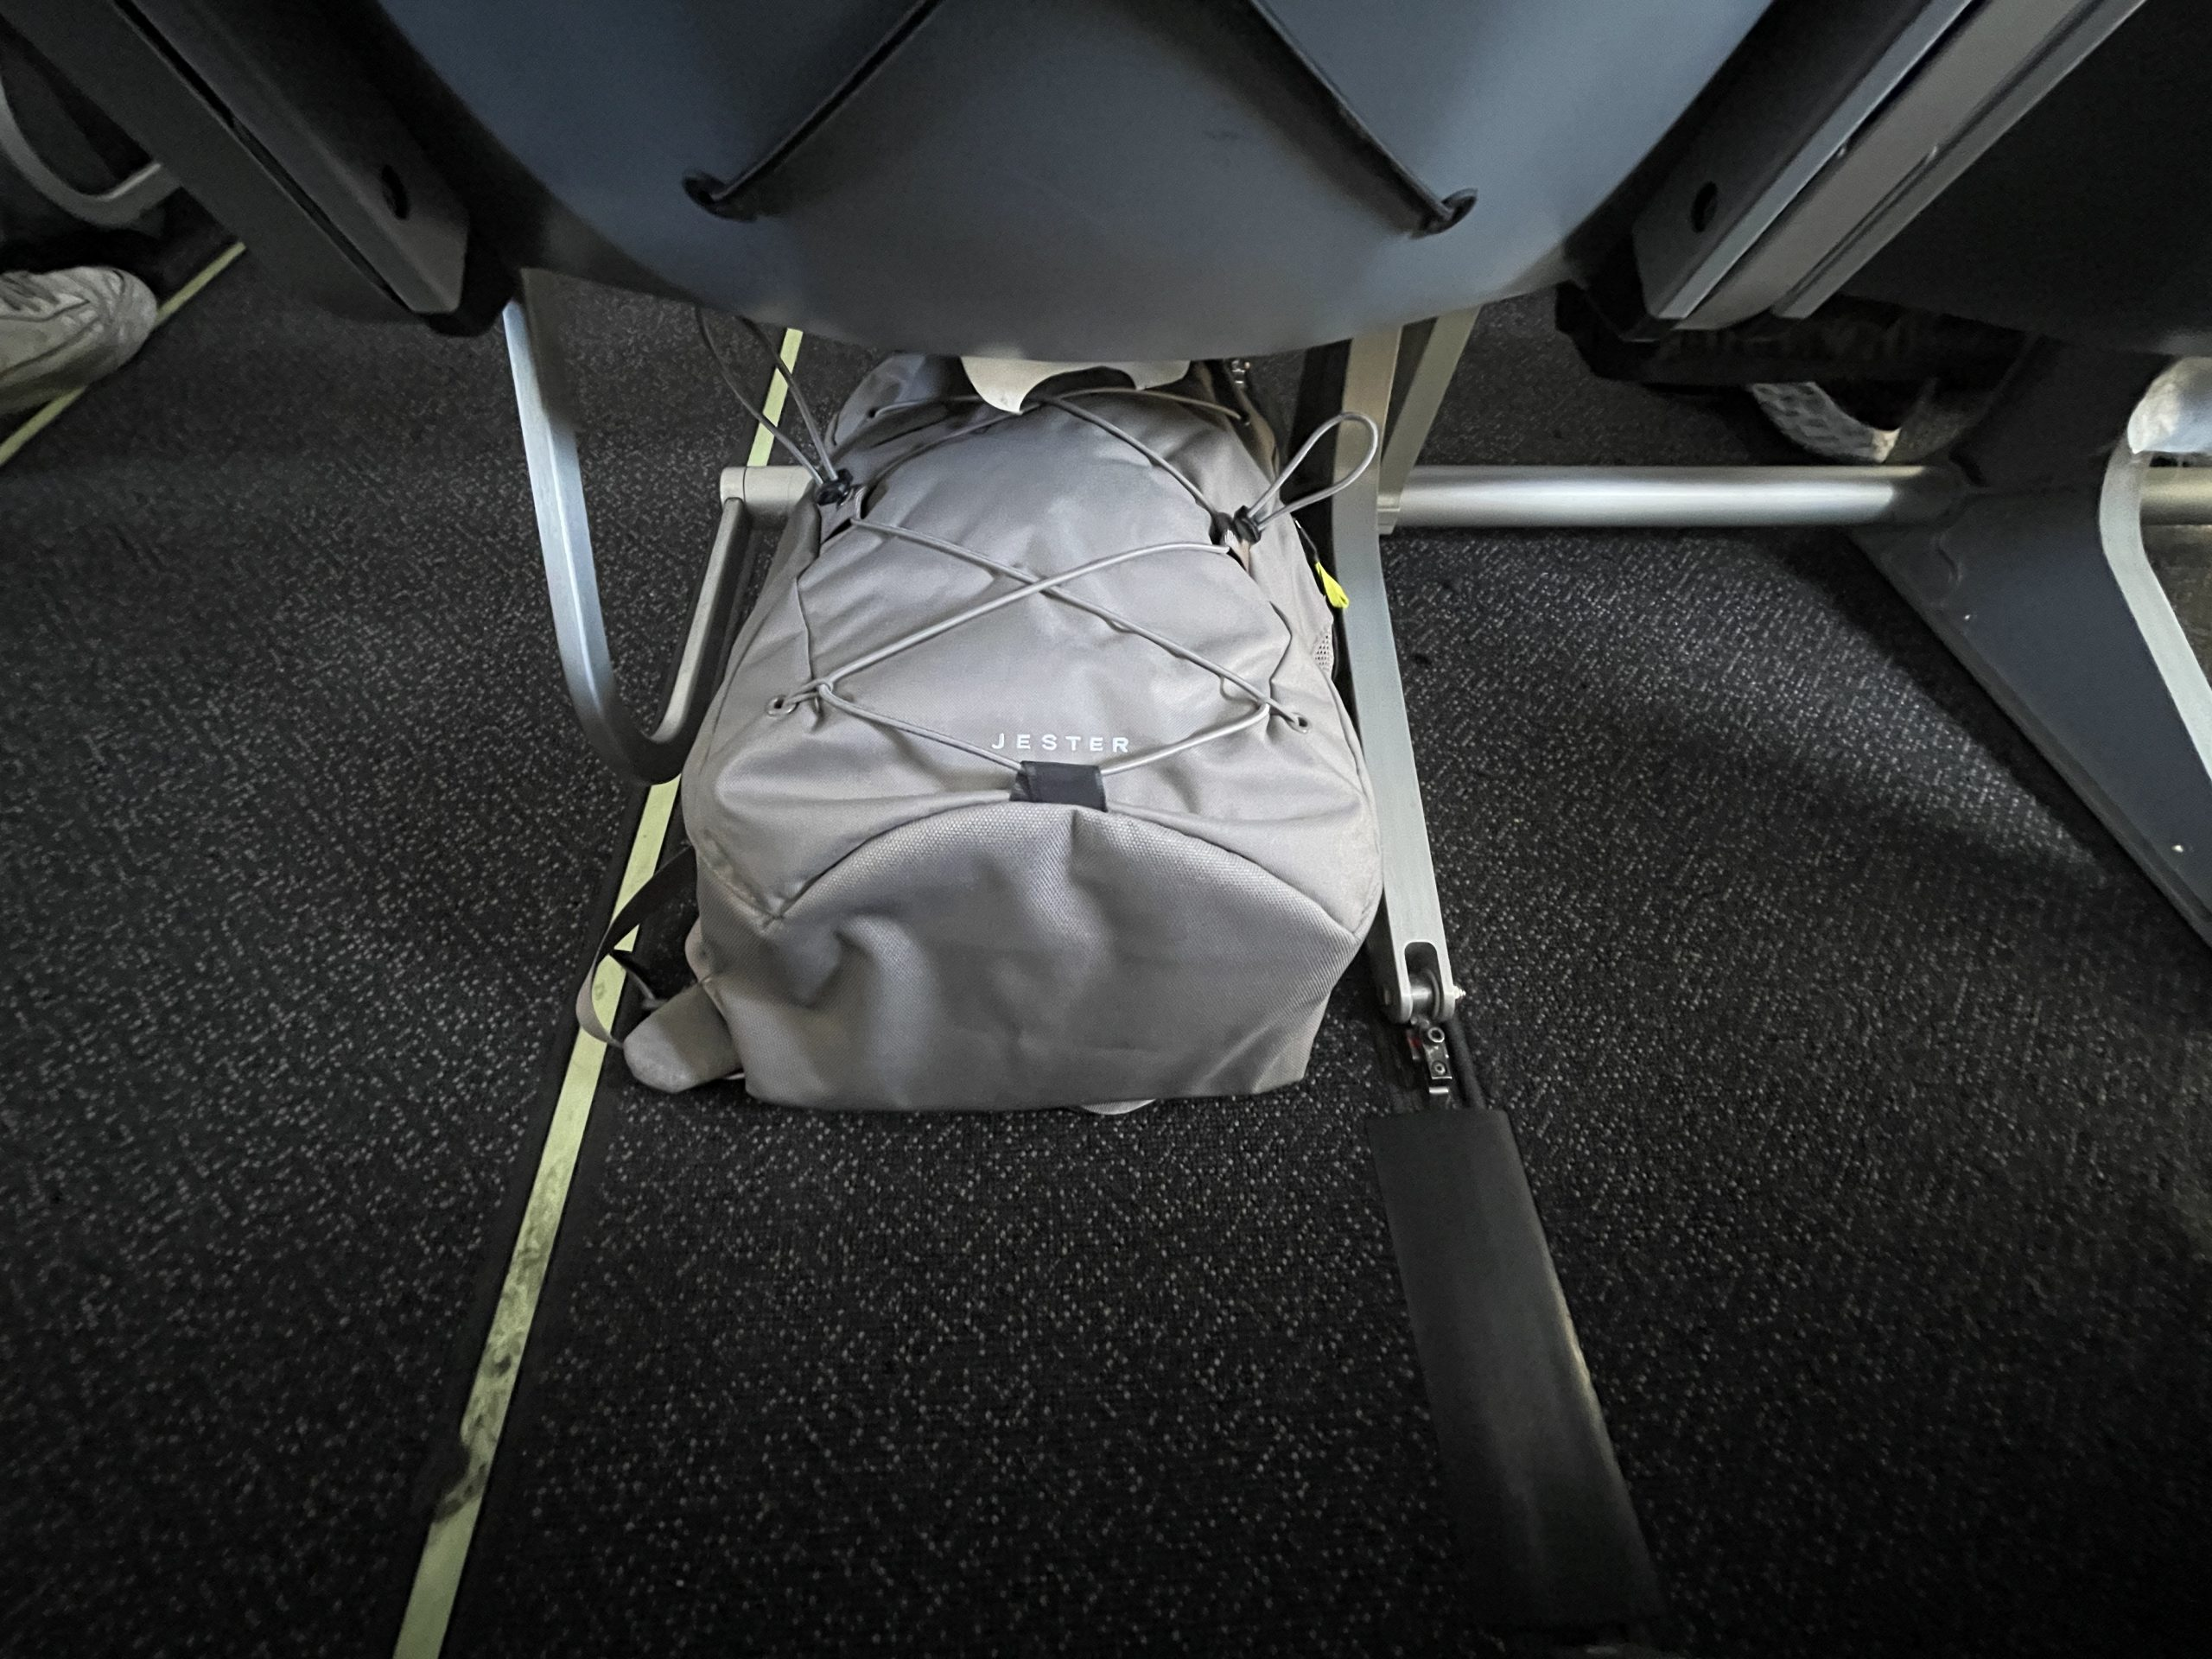 The North Face Jester under the airplane seat